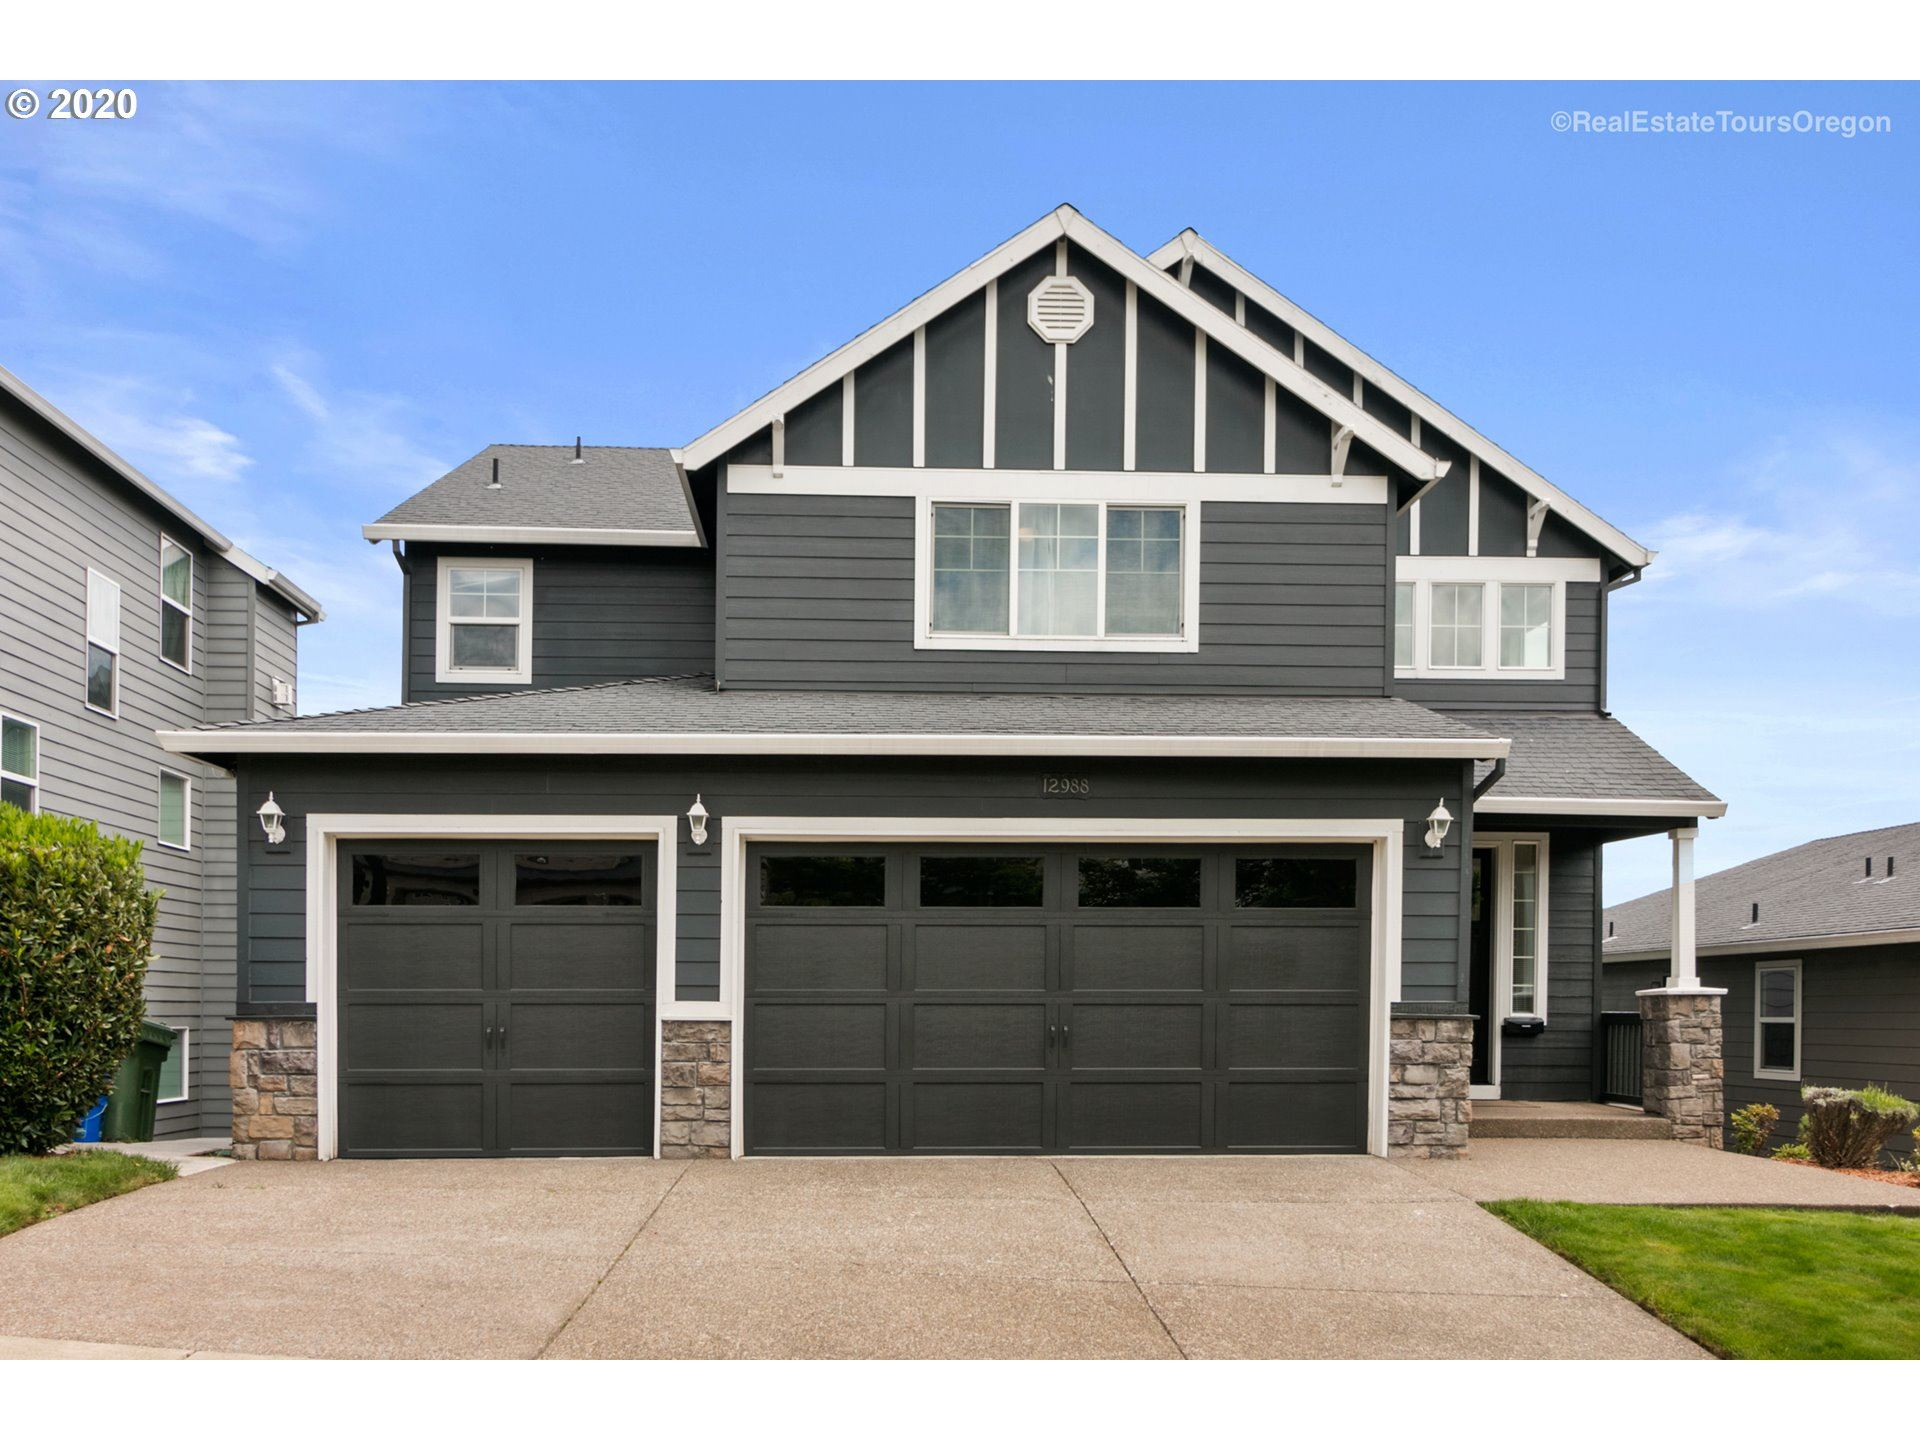 12988 SE MEADEHILL AVE, Happy Valley, OR 97086 - MLS#: 20380642